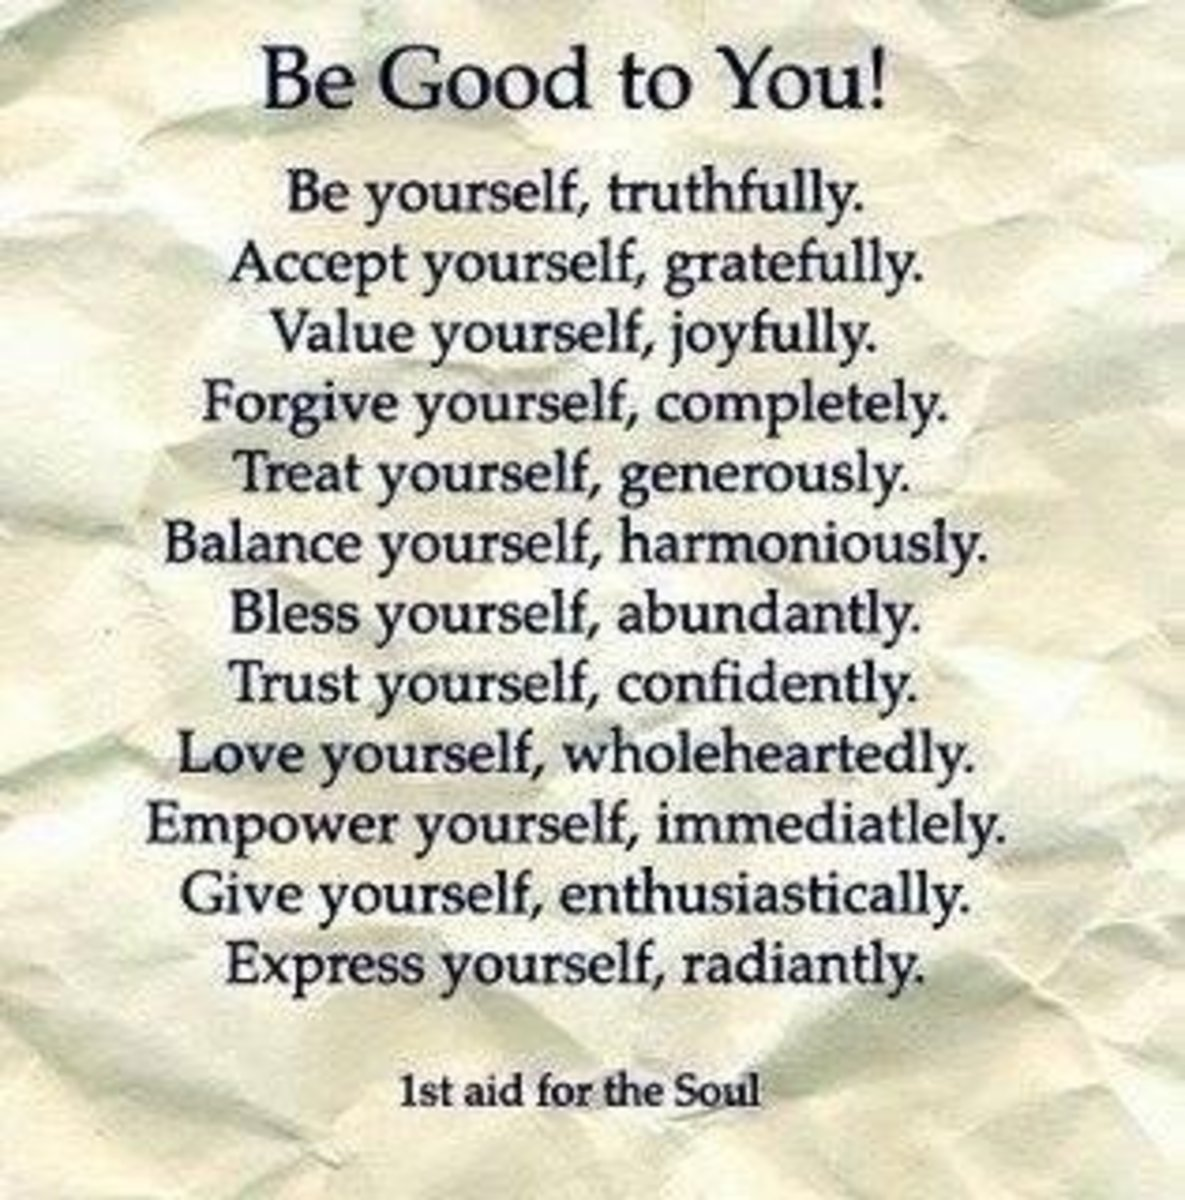 most-inspiring-quotes-and-positive-affirmations-with-emotional-meaning